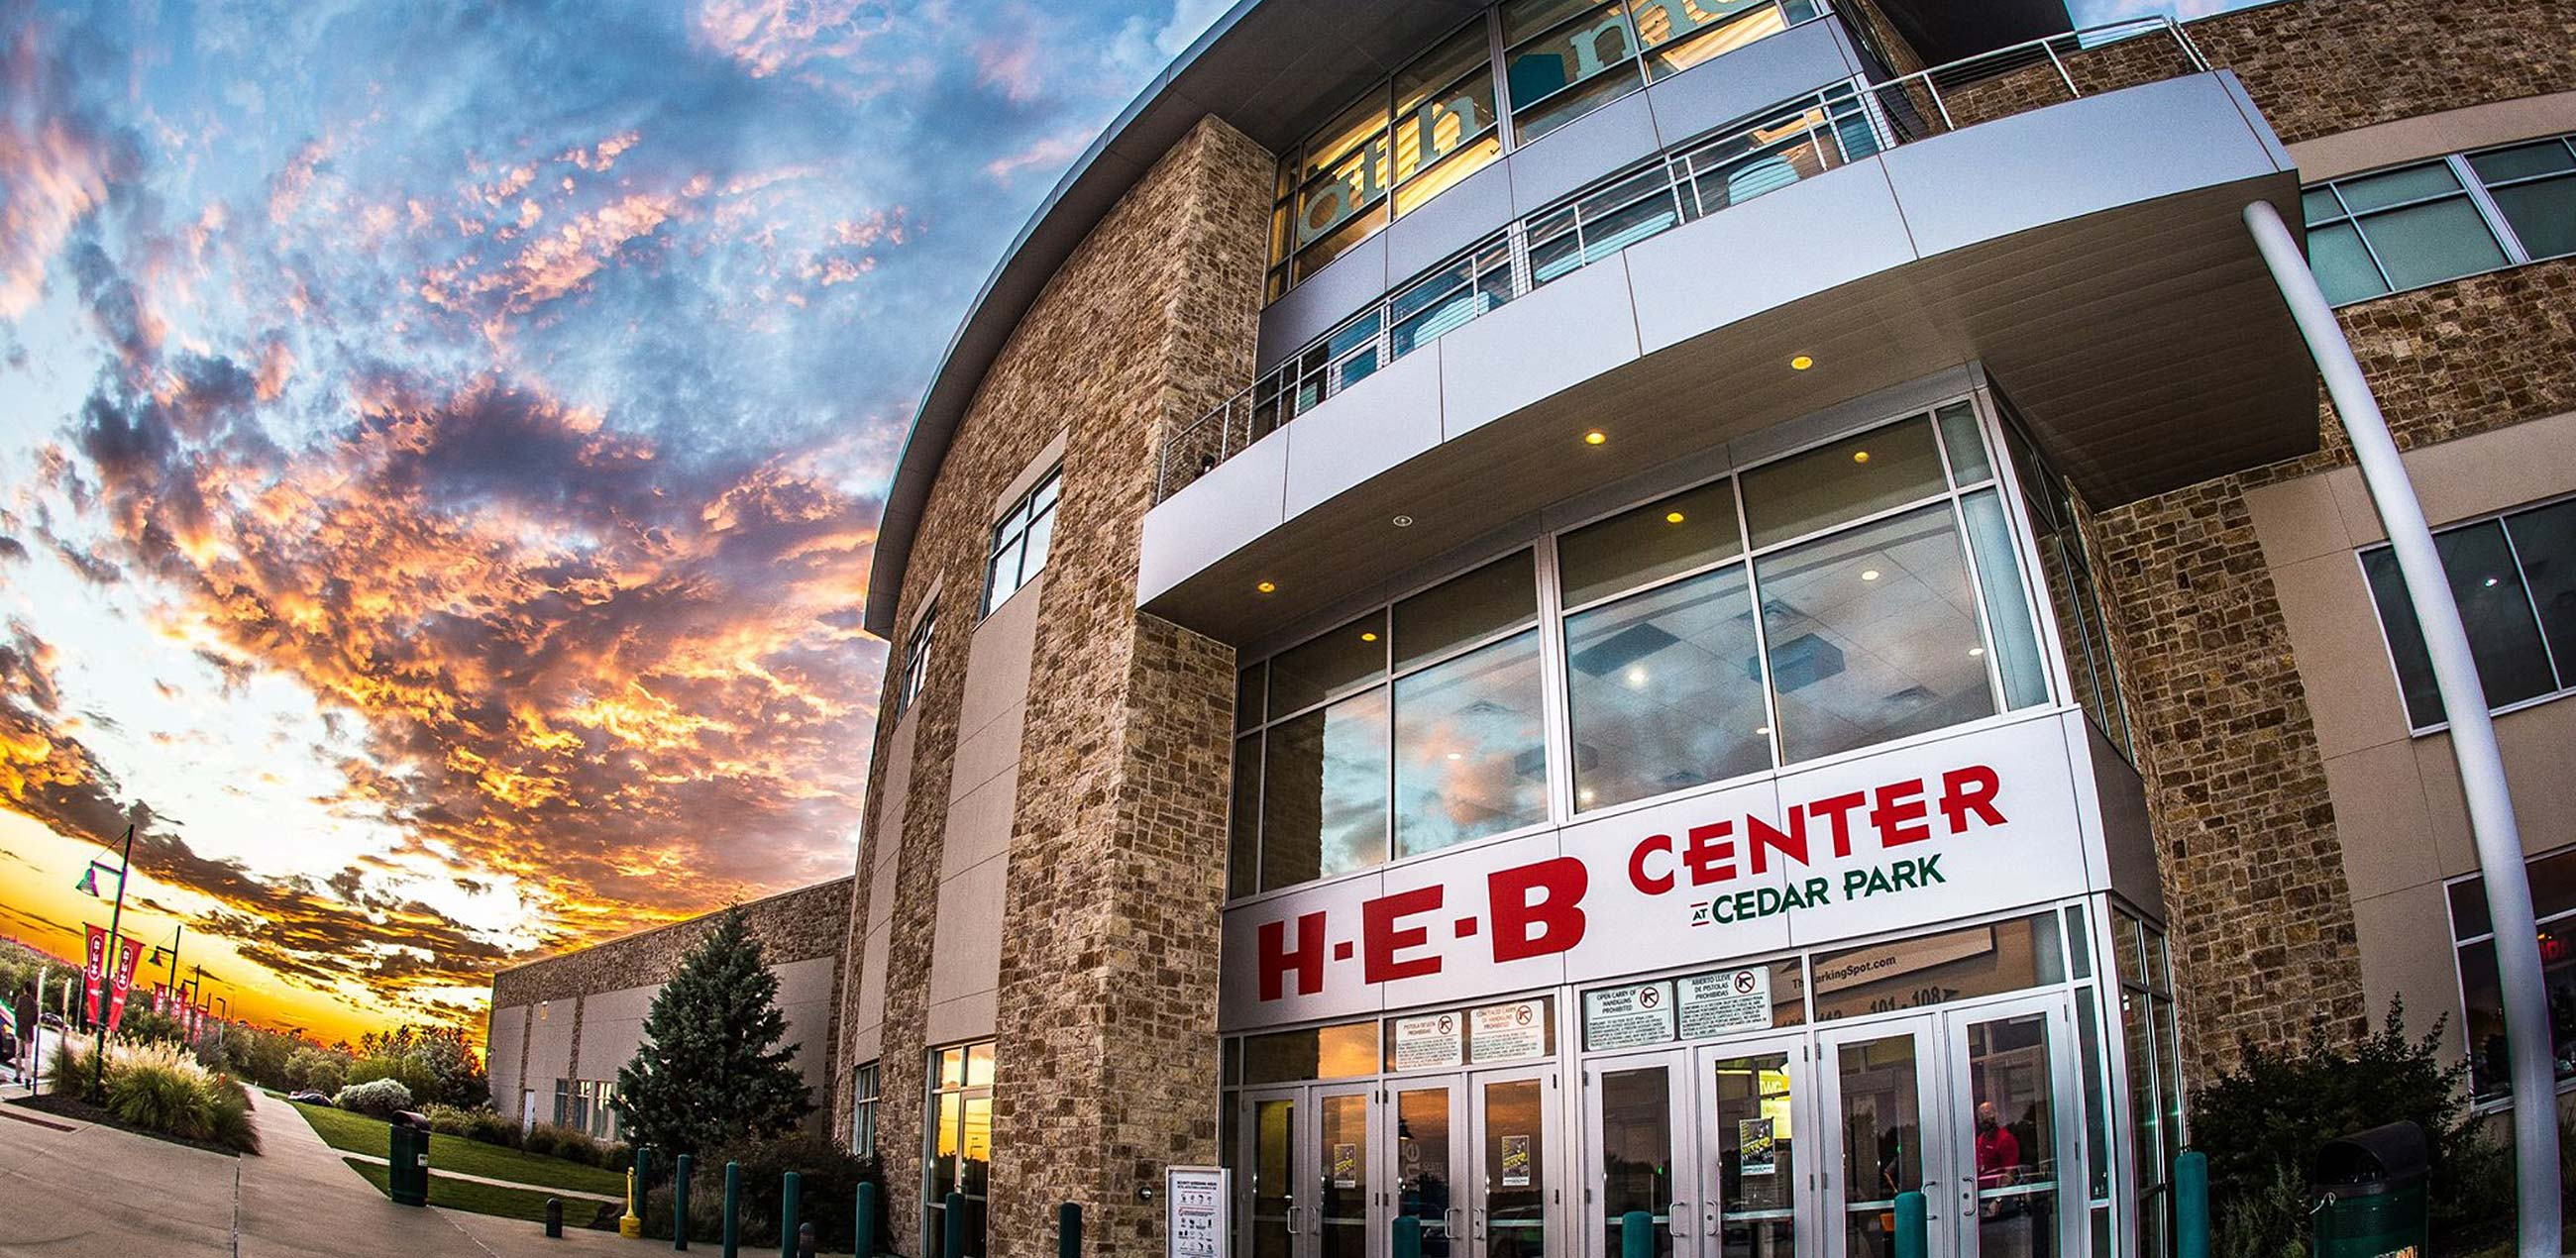 Heb Hours Christmas Eve.Box Office Information H E B Center